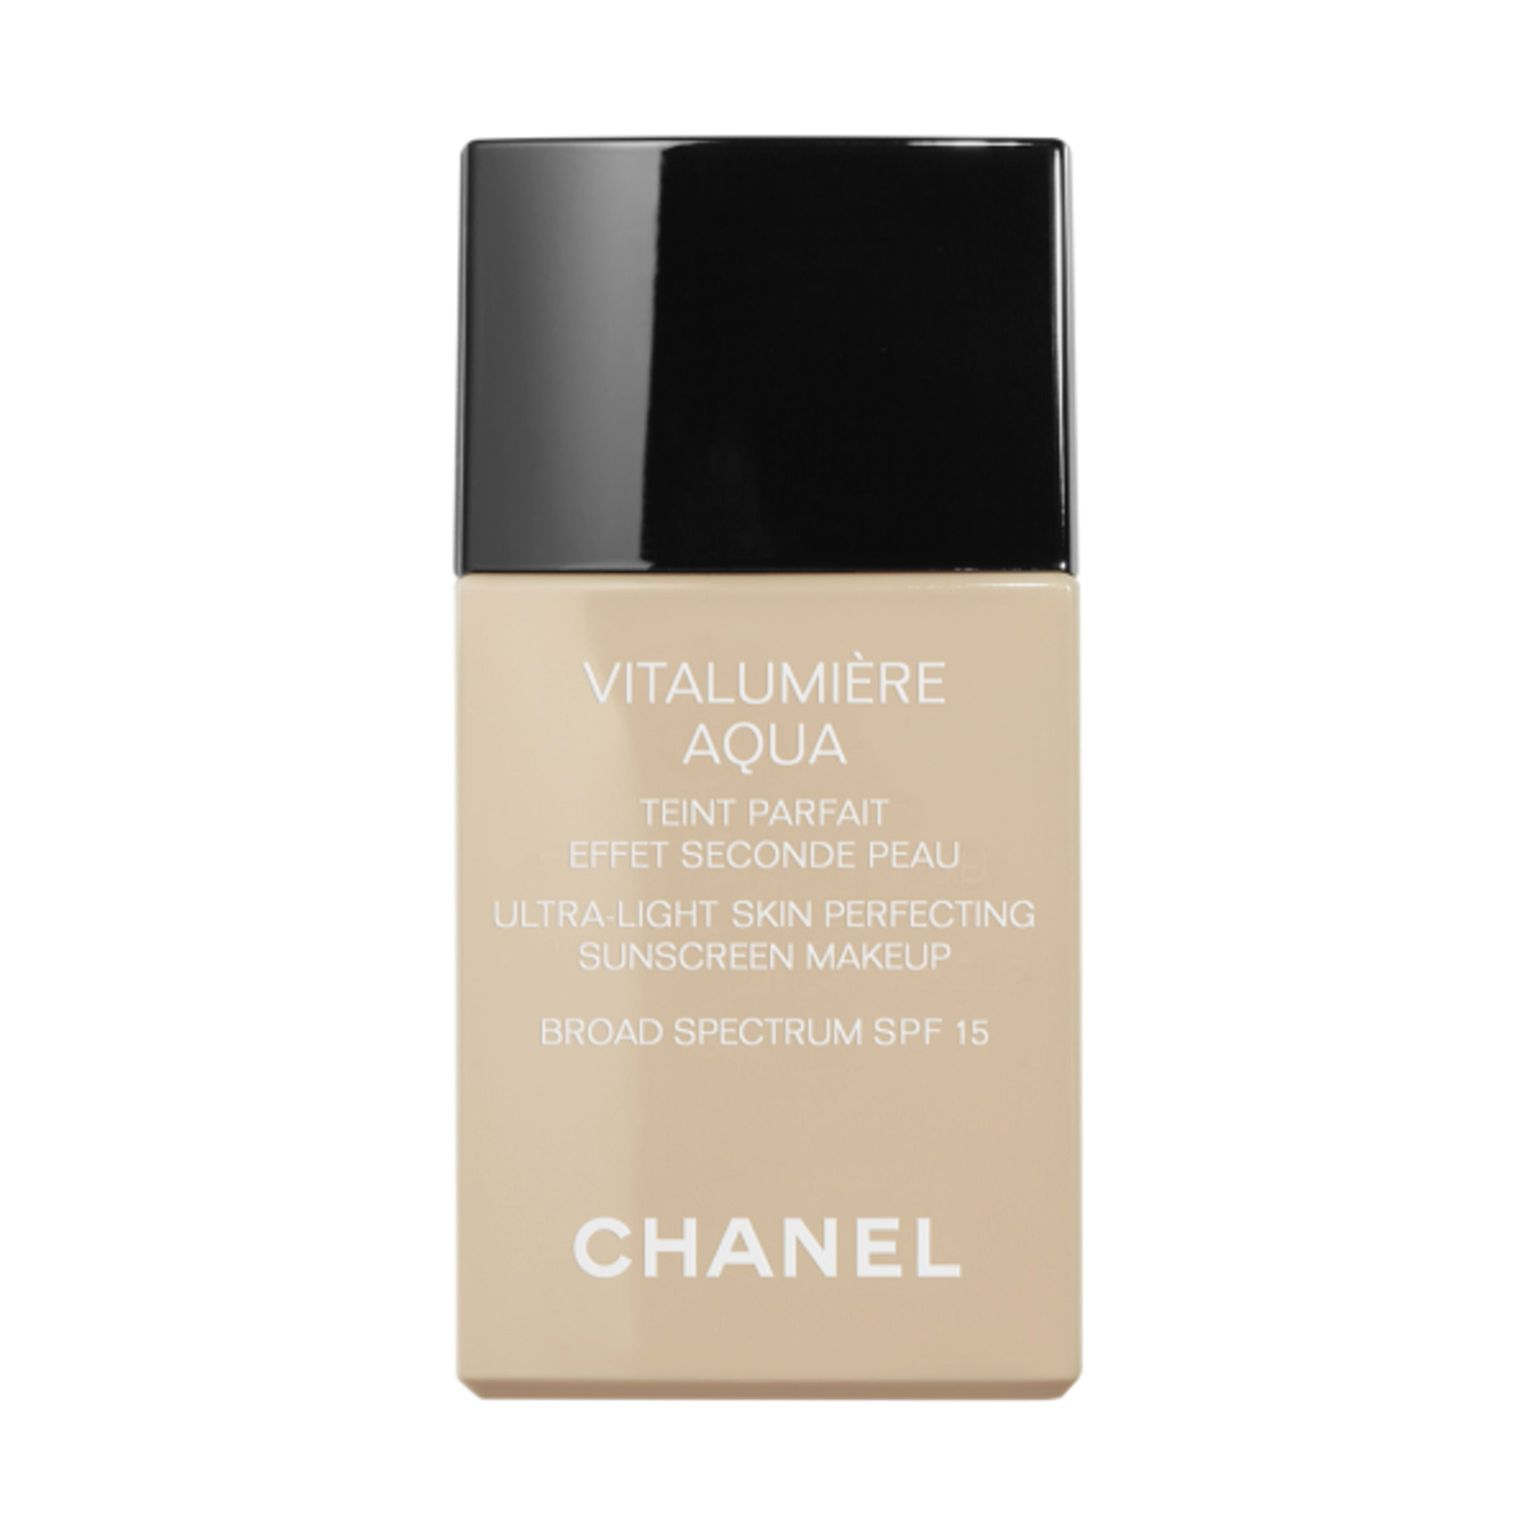 Vitalumiere Aqua Ultra-Light Skin Perfecting Makeup SPF 15